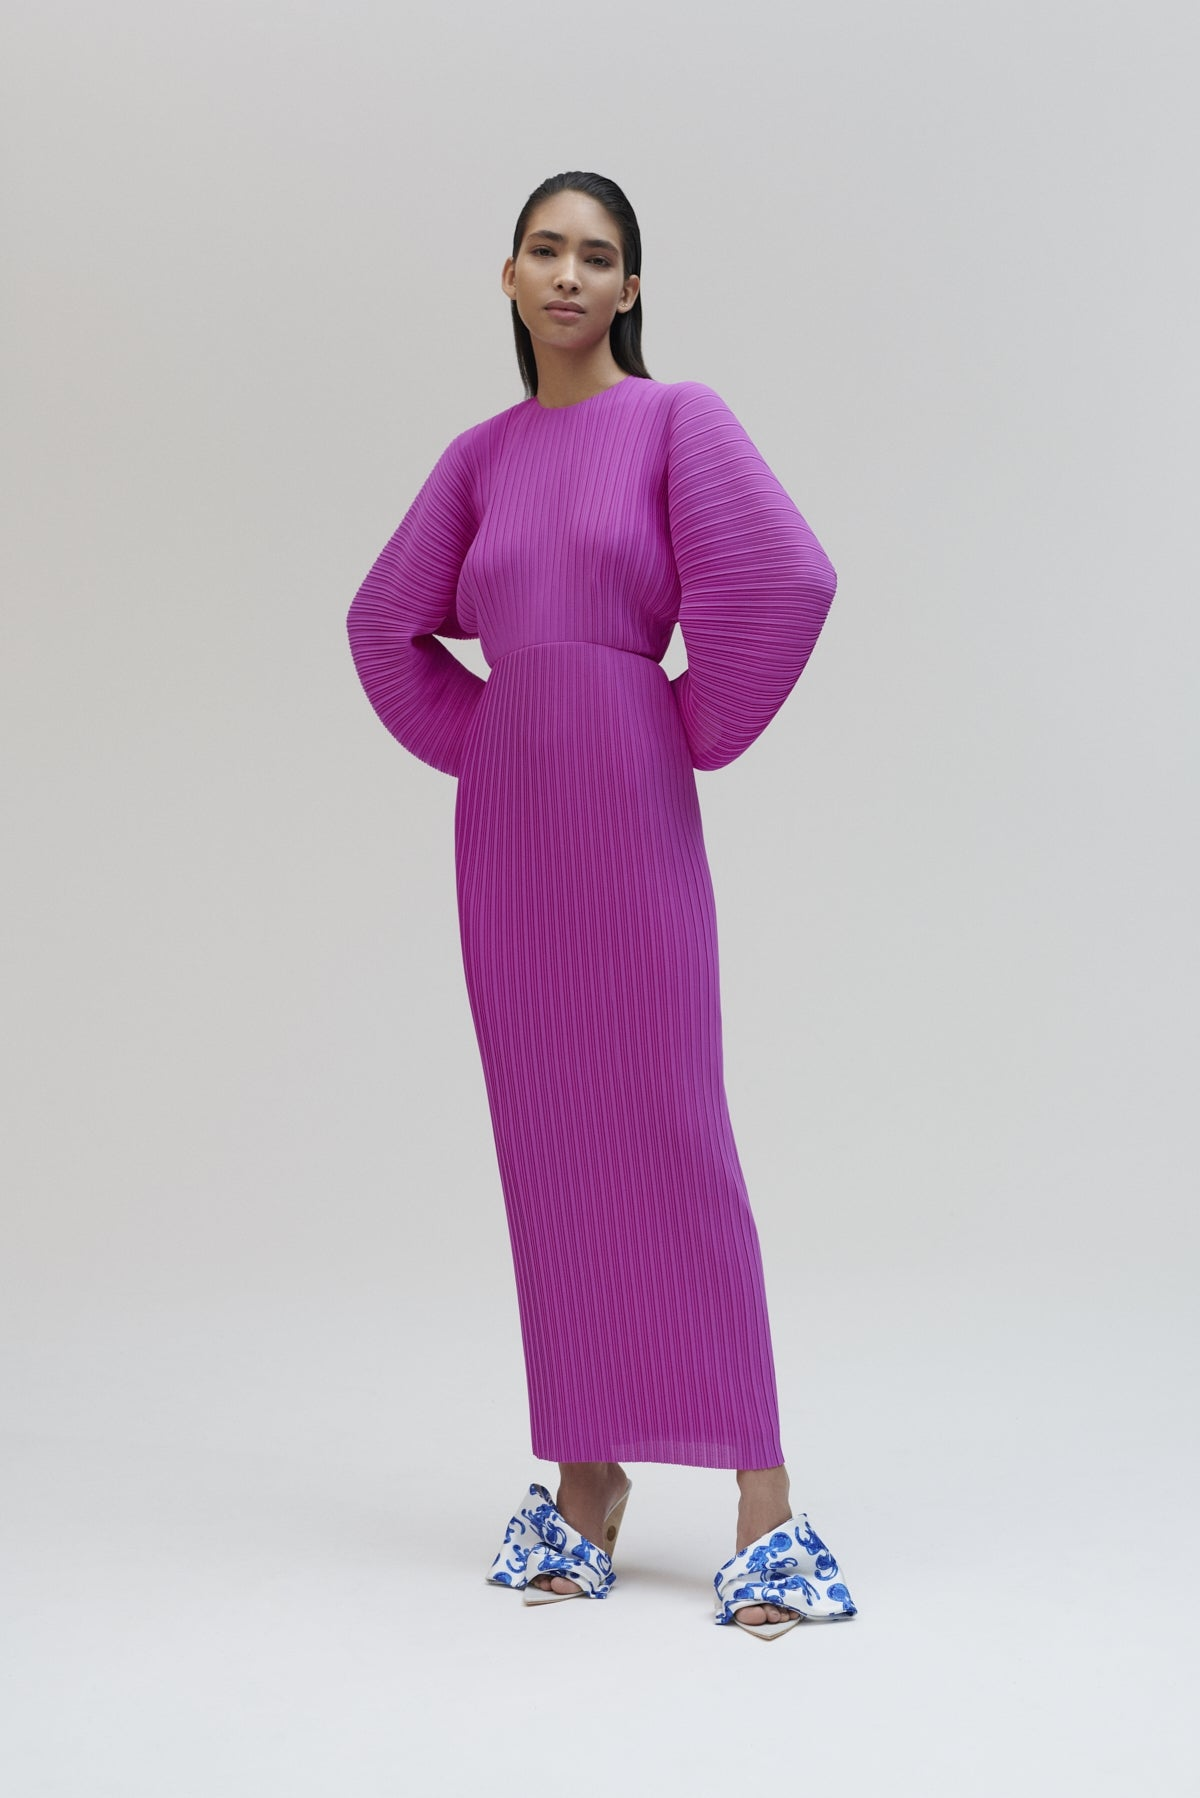 The Mirabelle Dress in Bright Purple